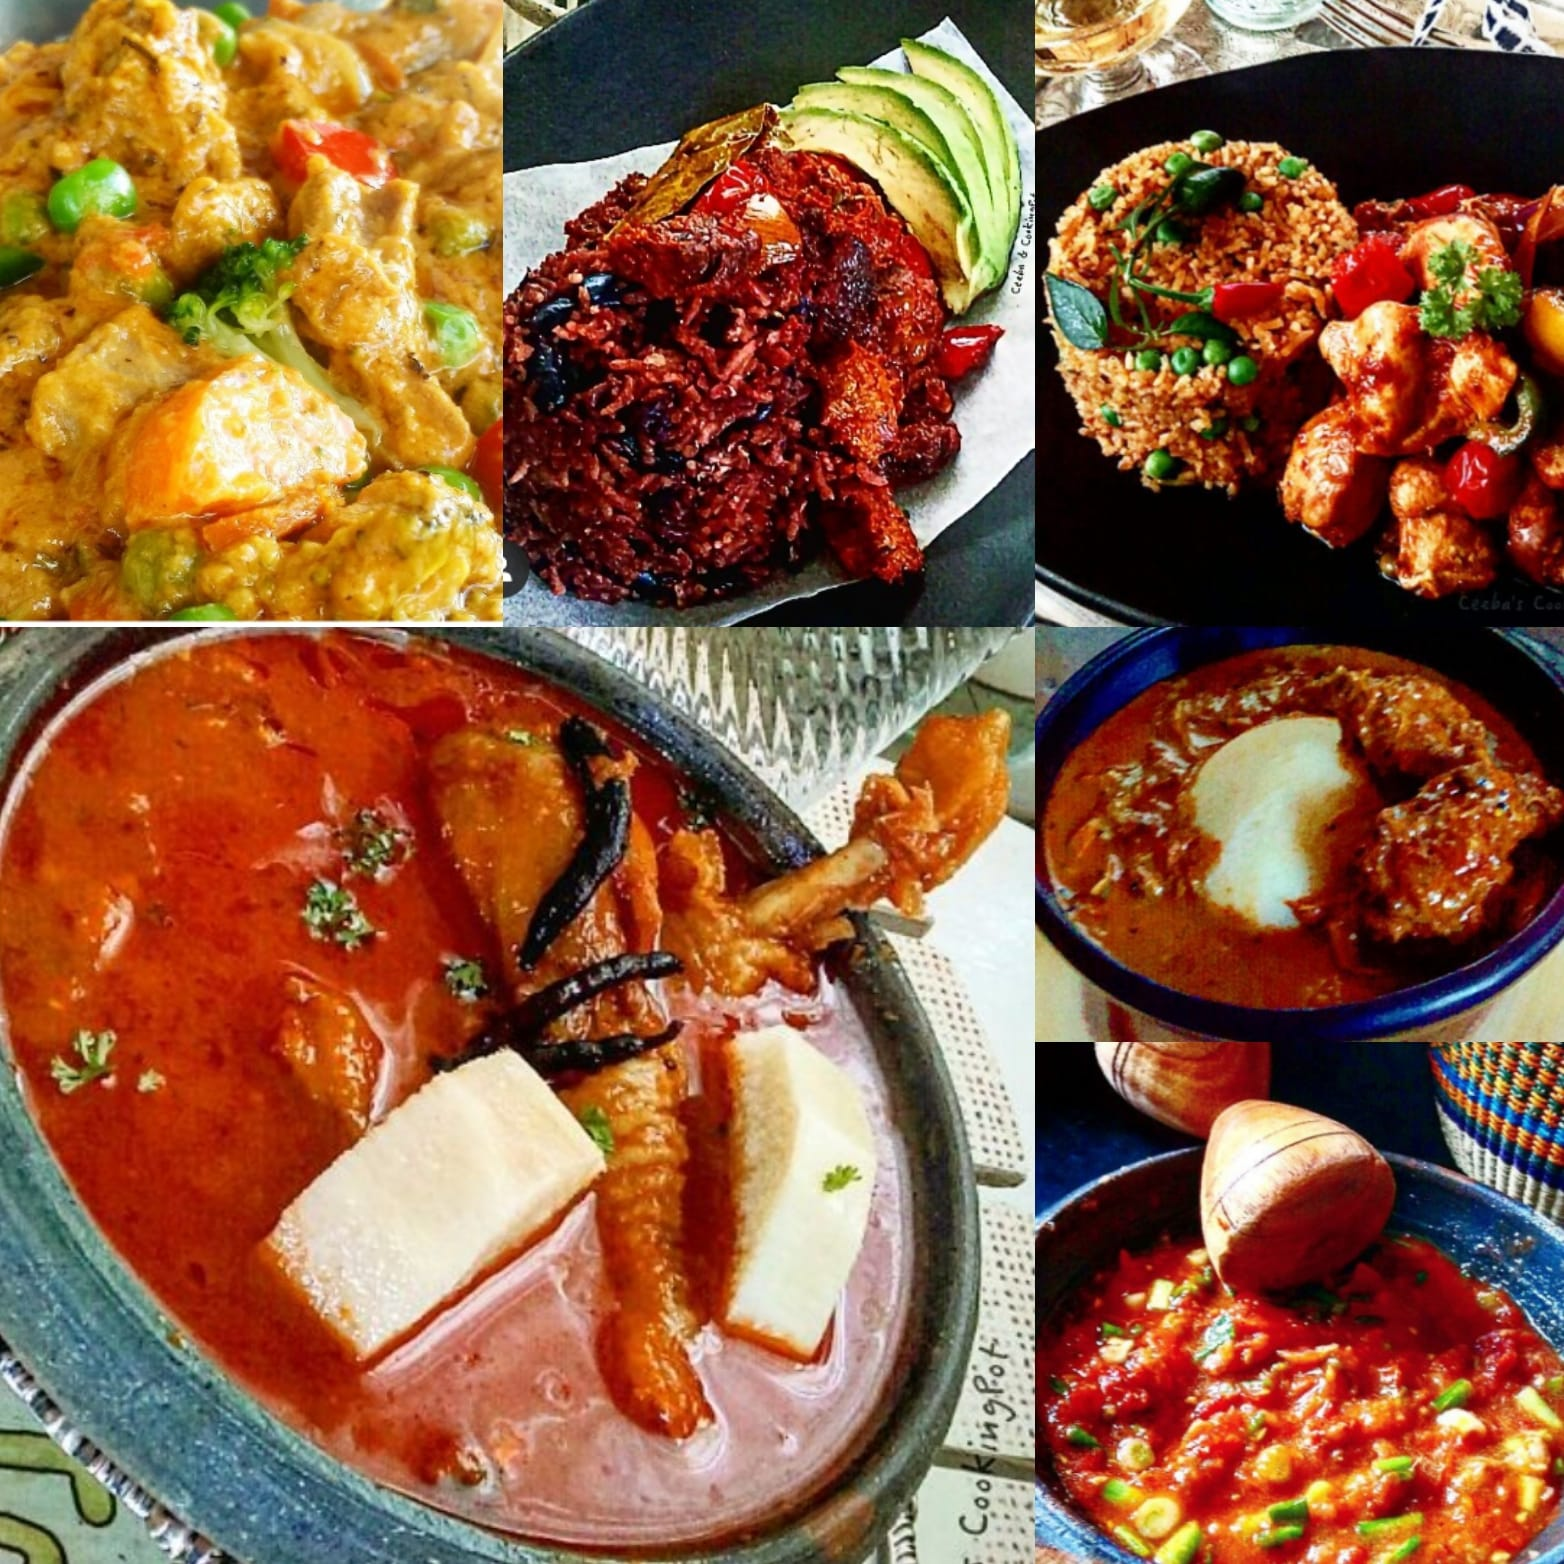 TRADITIONAL AFRICAN FOODS REAPPRECIATED -PART II